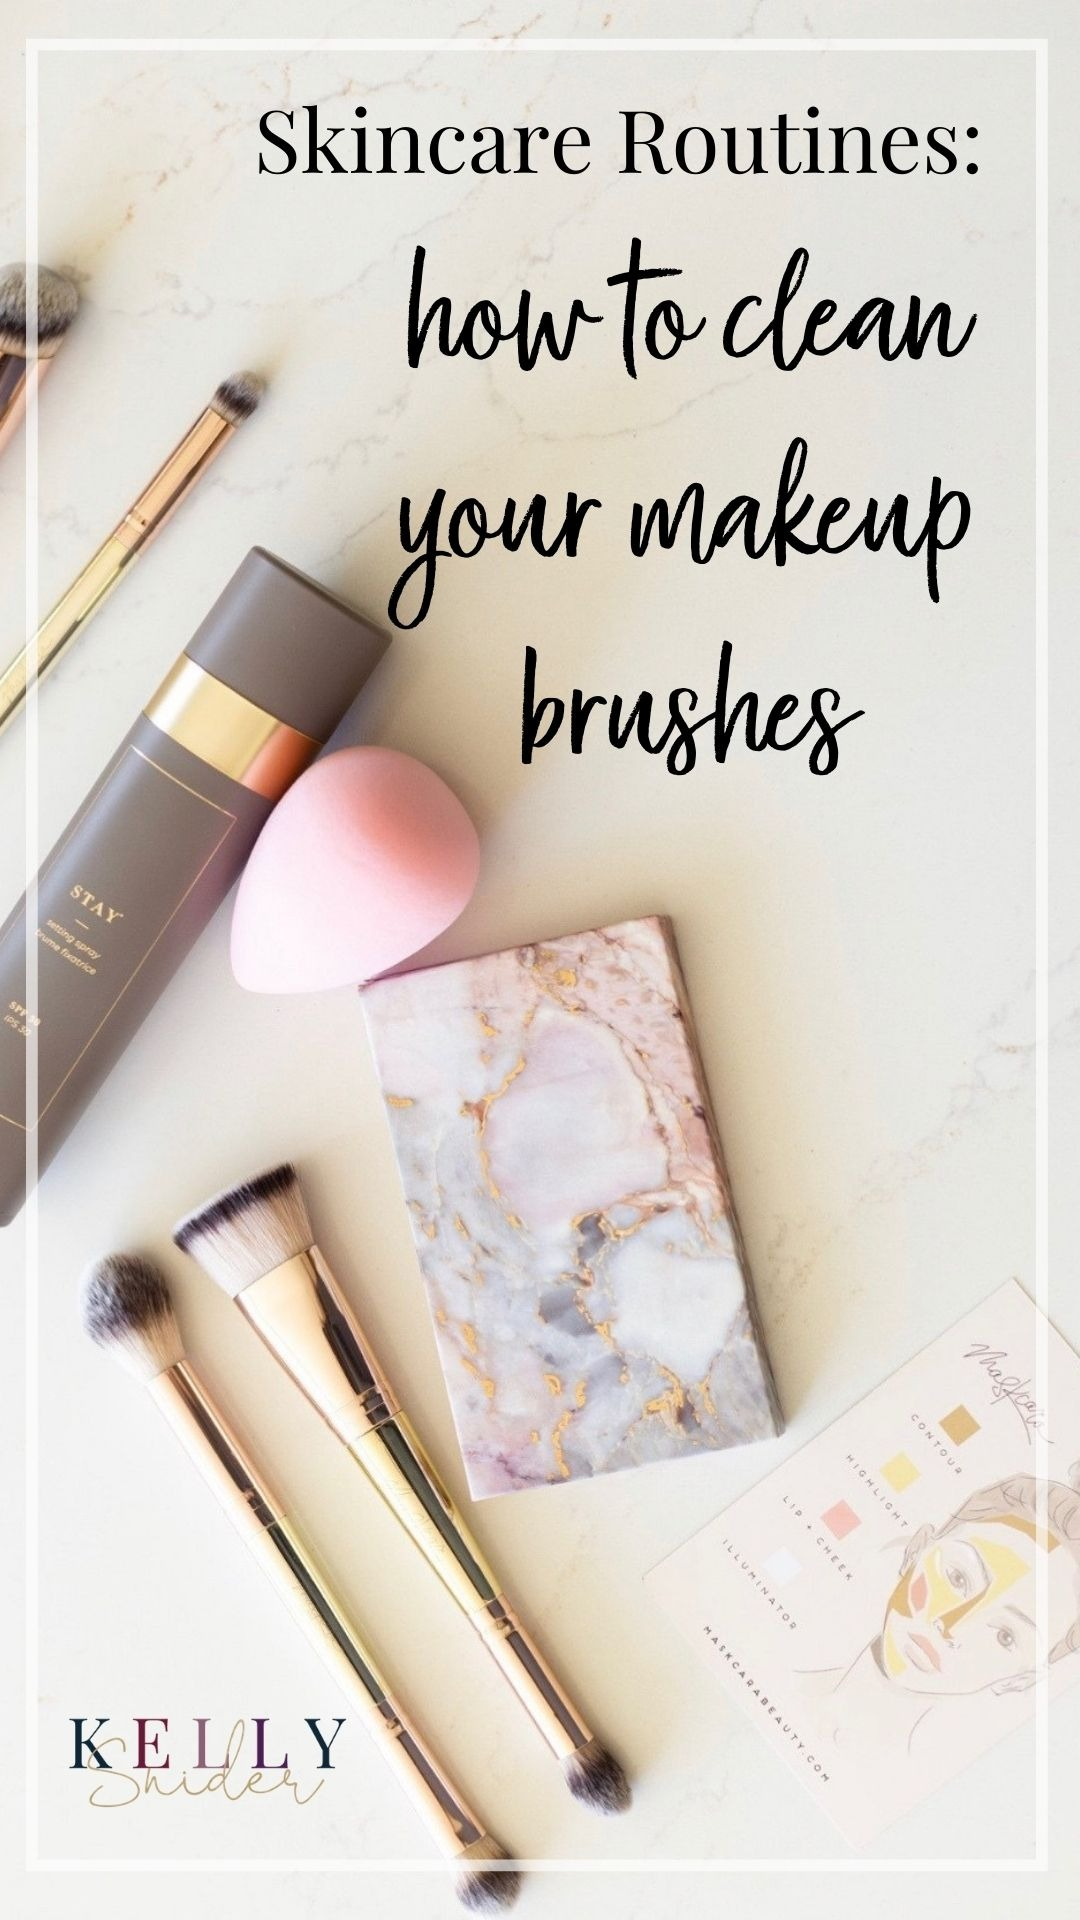 Skincare Routines: How to Clean Your Makeup Brushes